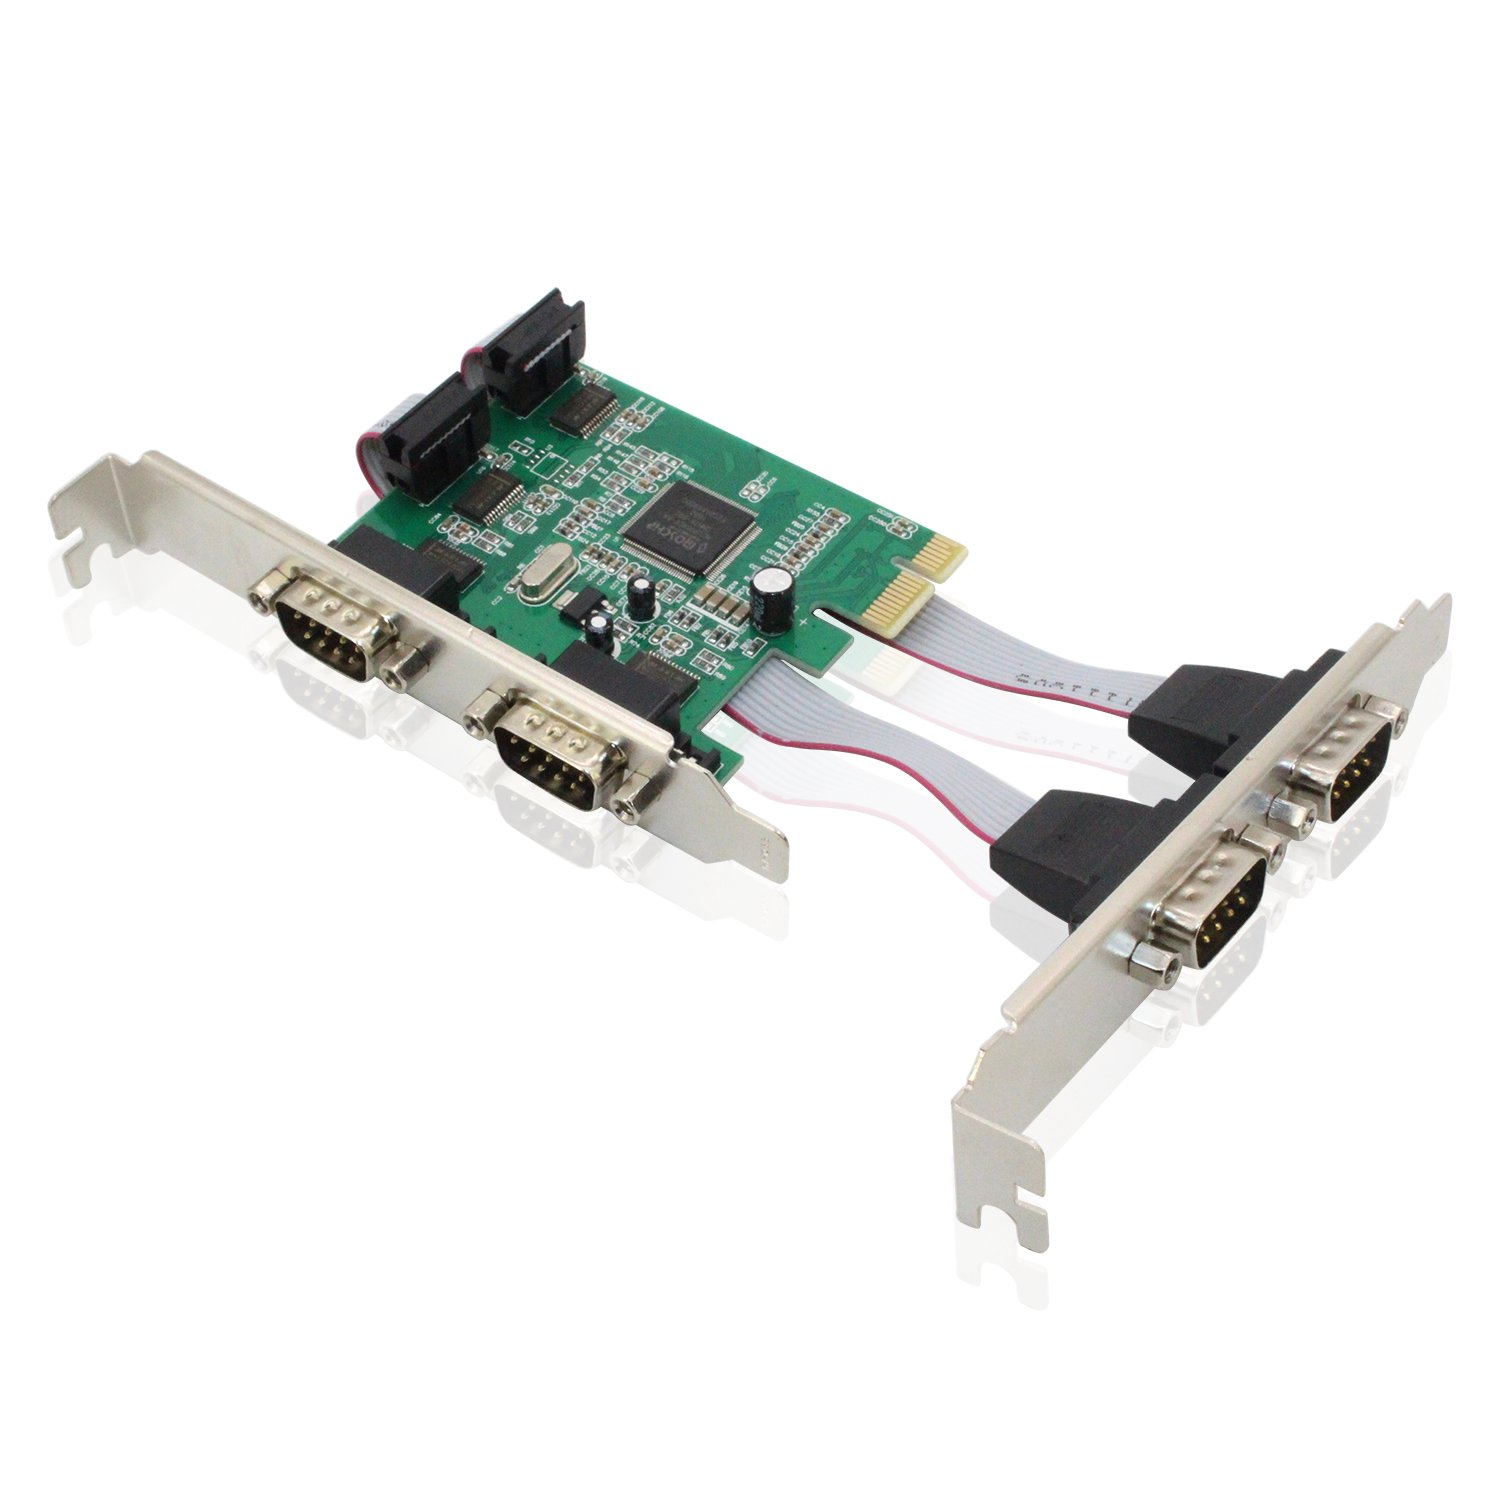 Tanbin 4-ports DB-9 rs232 PCI-e serial controller PCI Express I/O card Moschip 9904 Chipset with low profile bracket